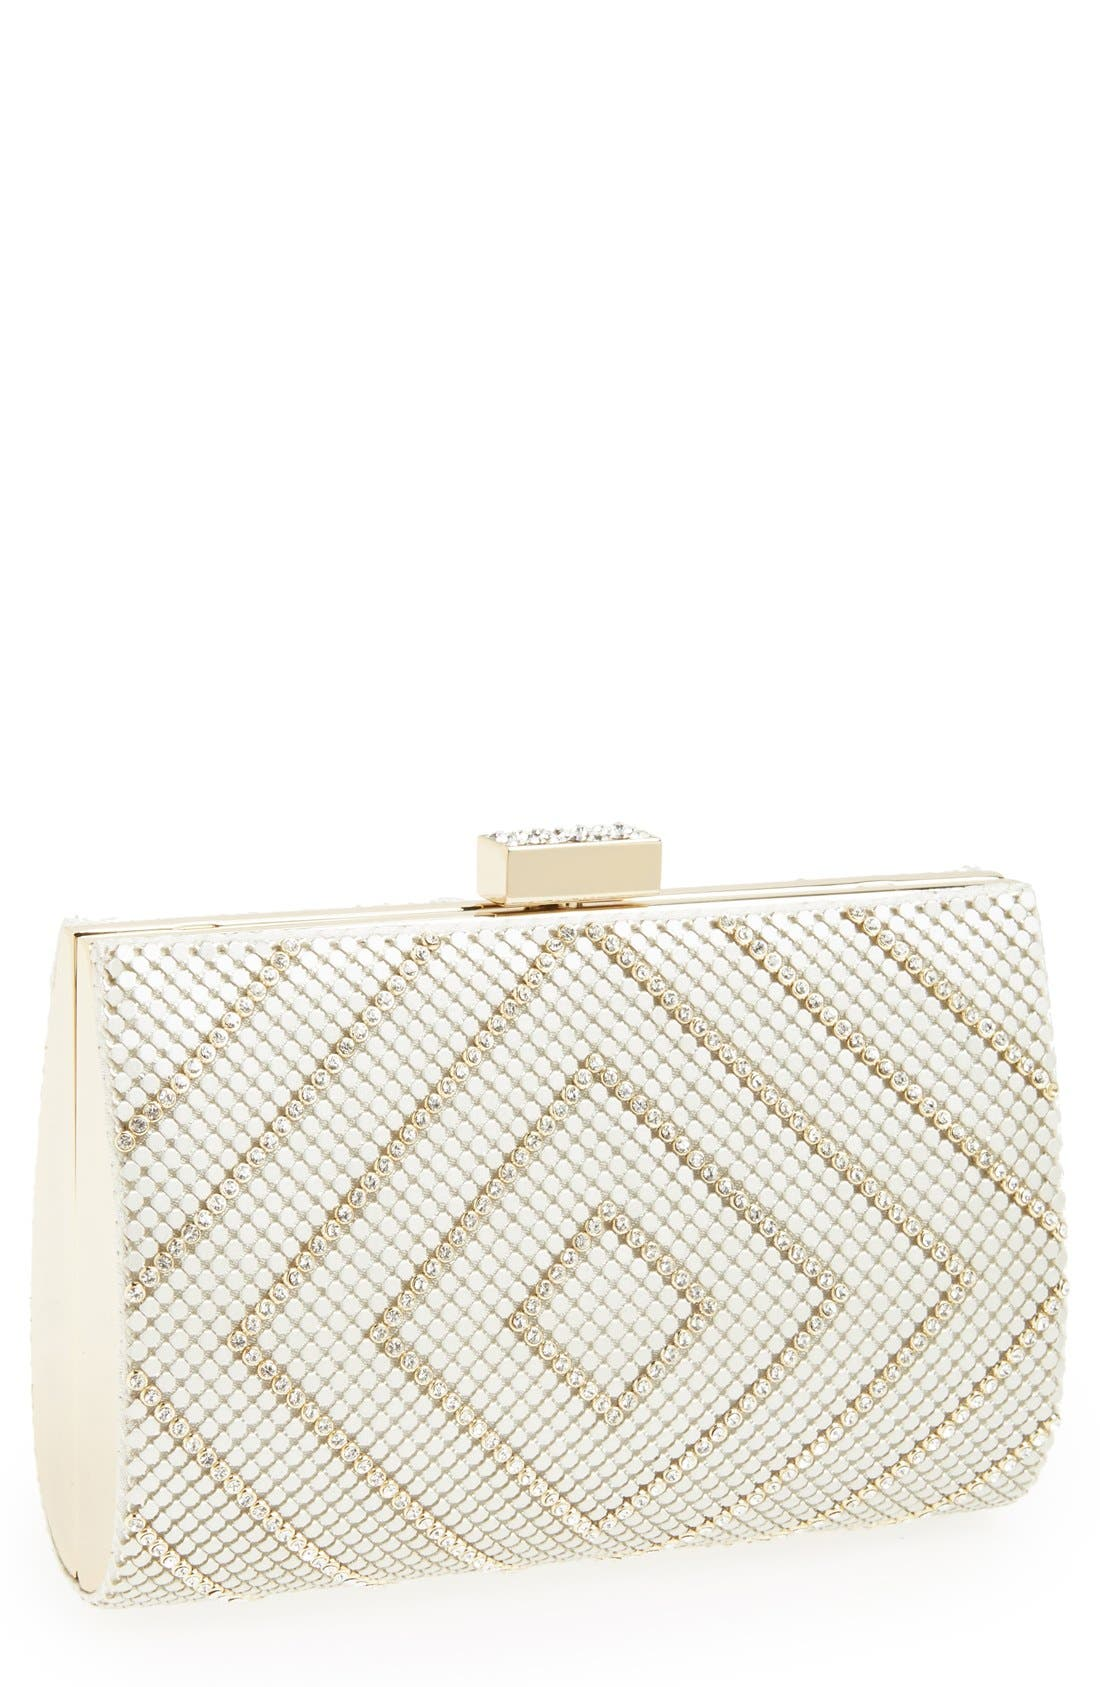 Main Image - Whiting & Davis 'Diamond Heights' Clutch